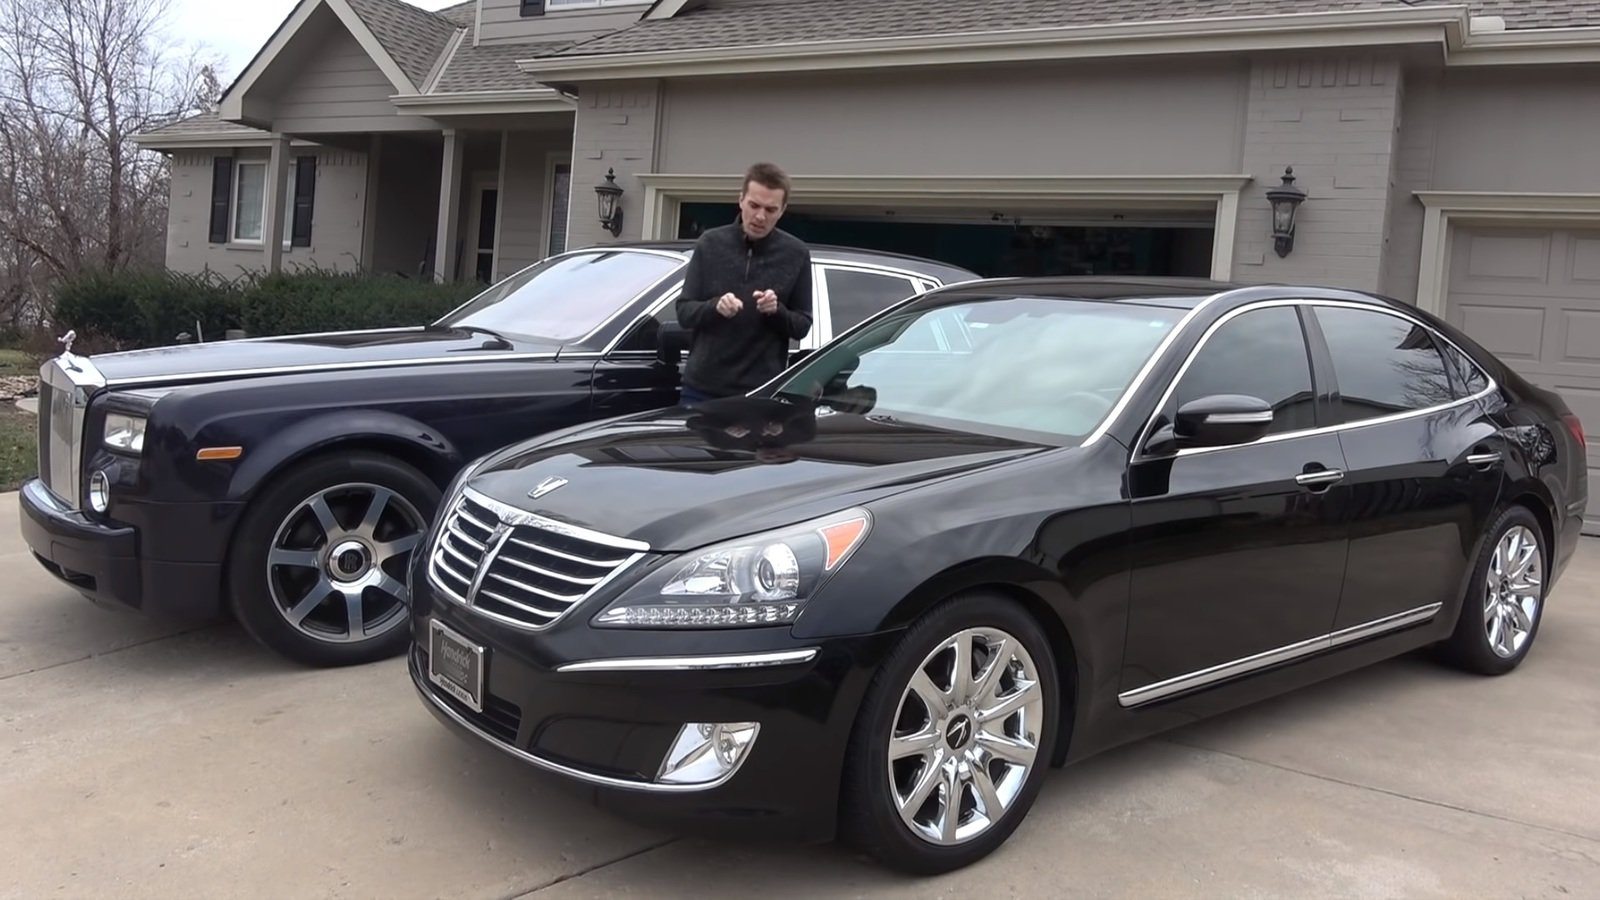 Used Cars Under 15000 >> A $15,000, Second Hand Hyundai Equus Is Rolls-Royce ...